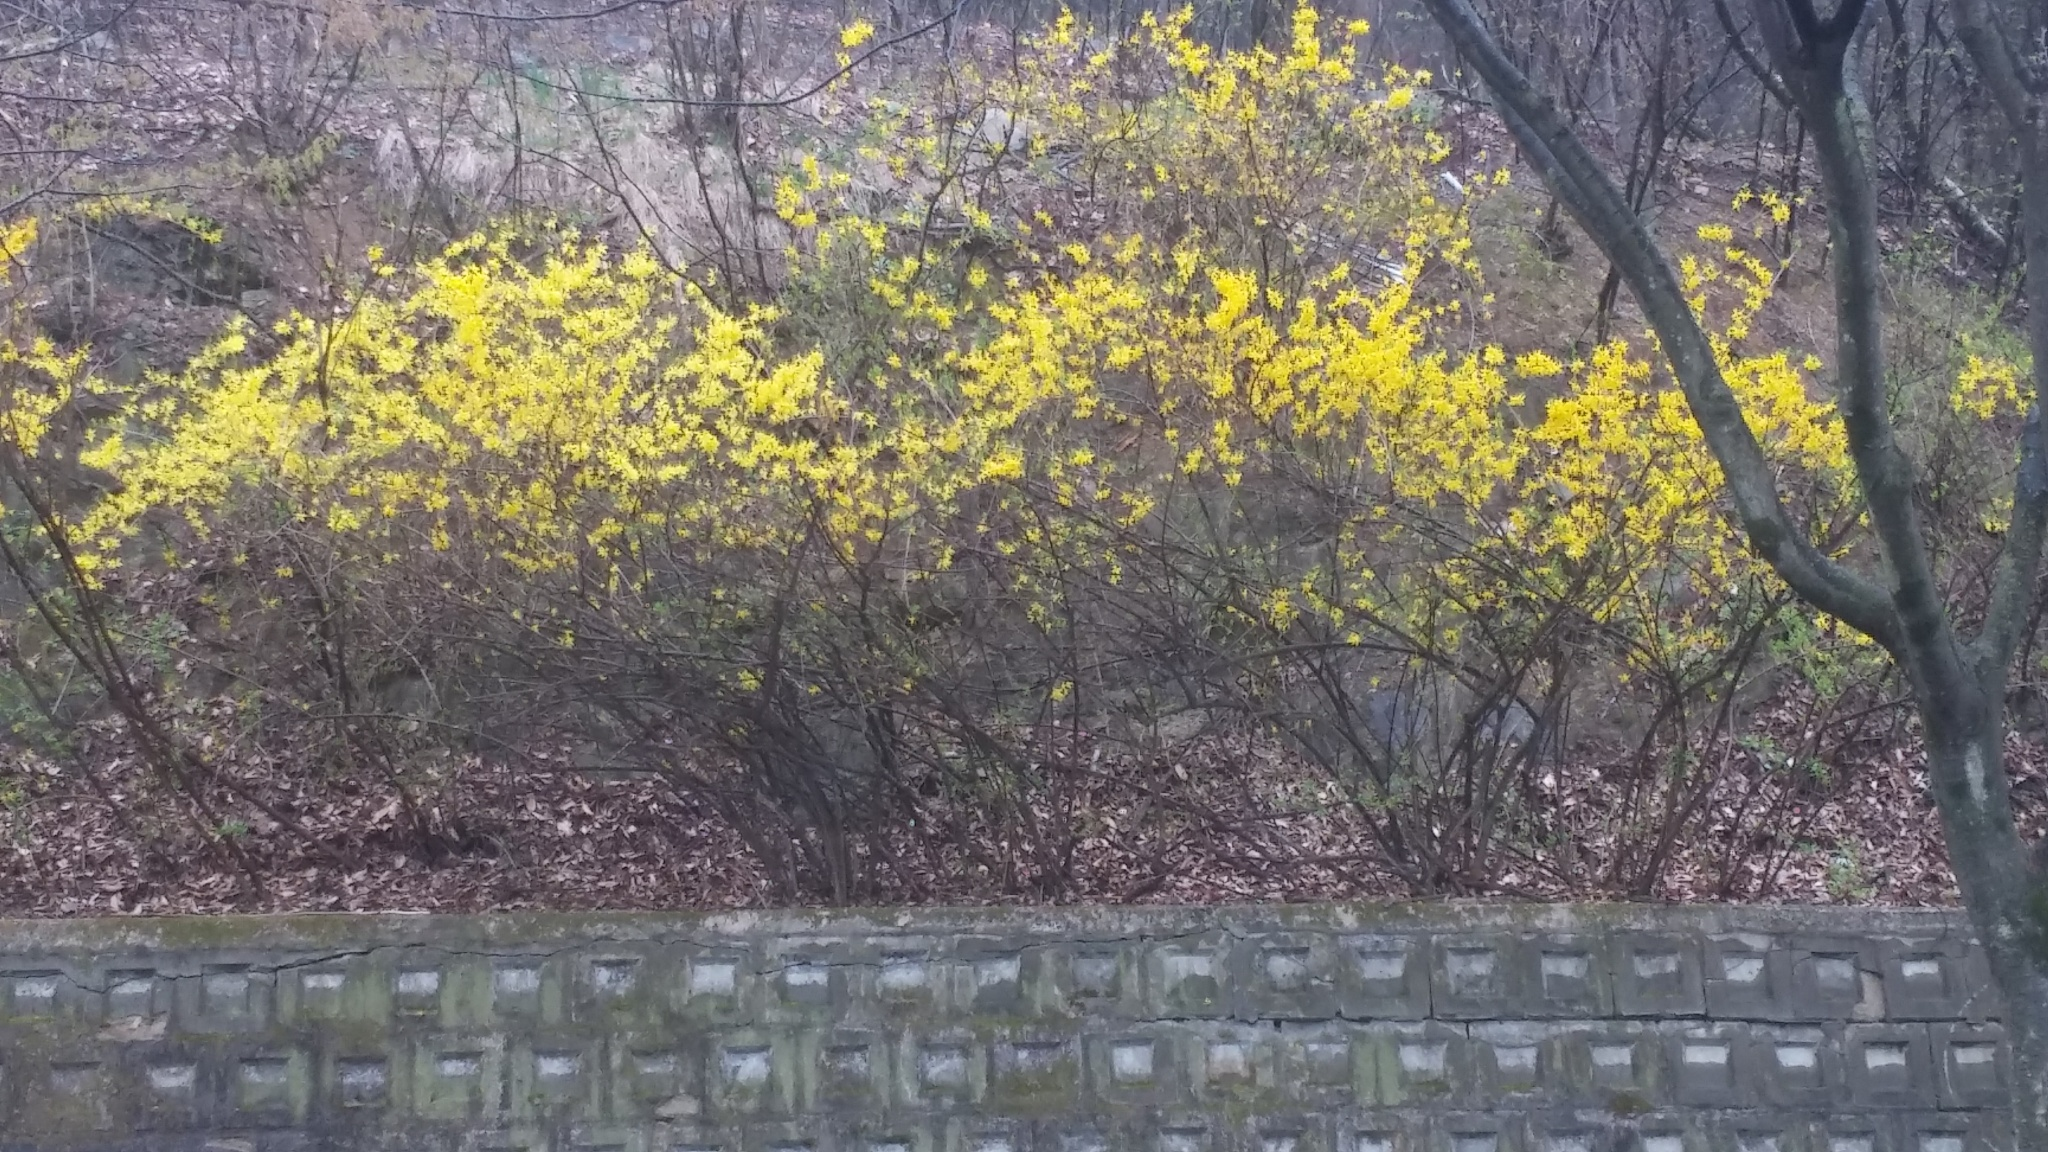 forsythia by ParkSeong Hyeon